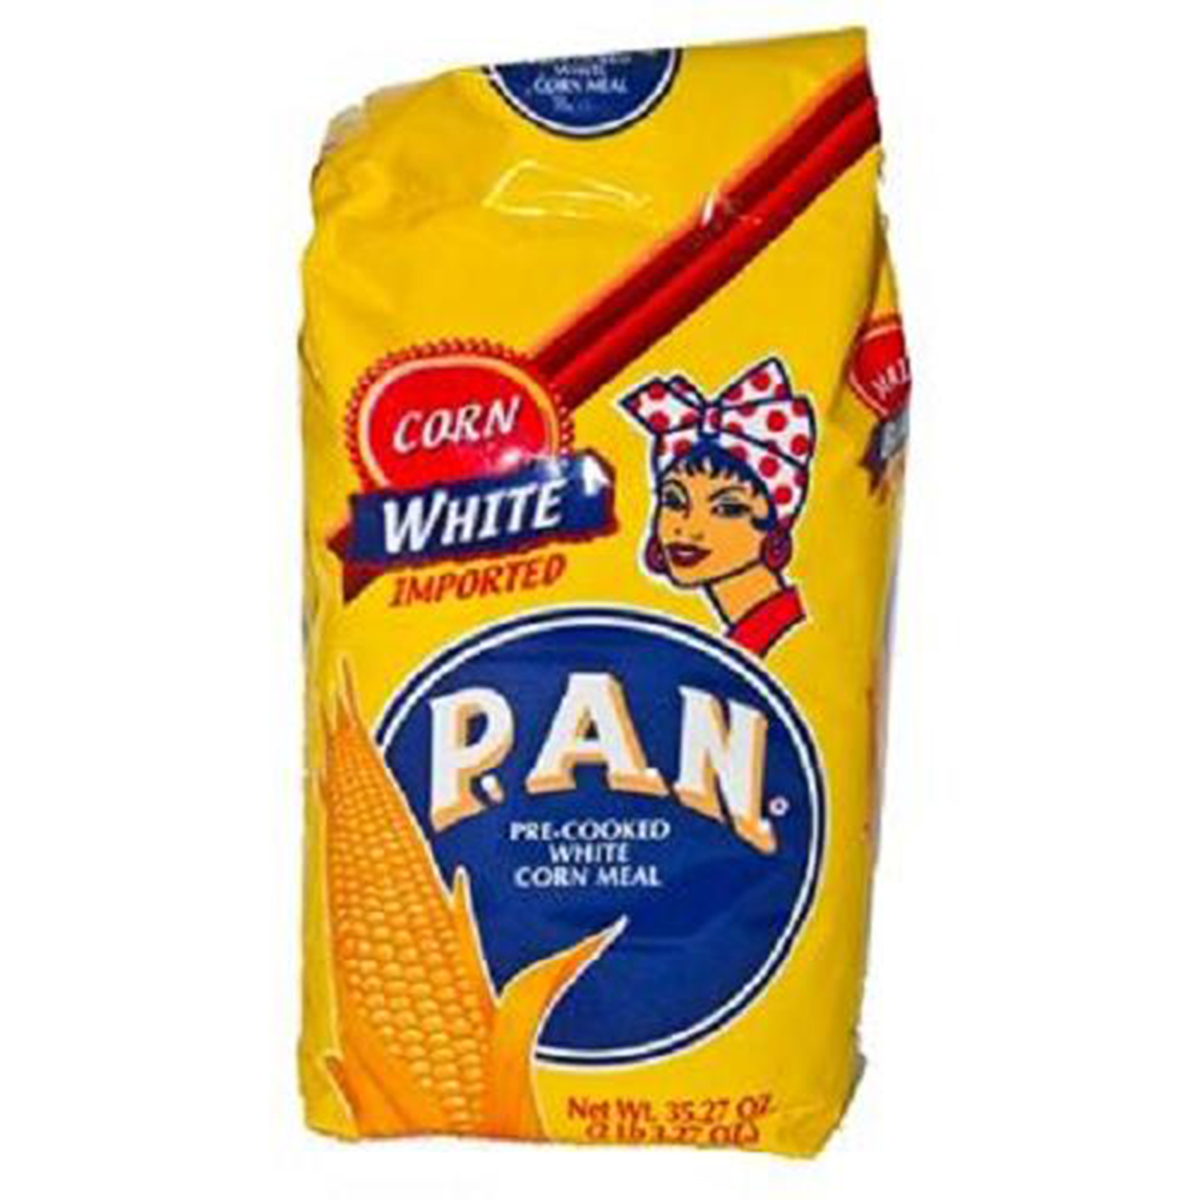 Product Of Pan, Pre-Cooked White Corn Flour, Count 1 - Flour / Grab Varieties & Flavors